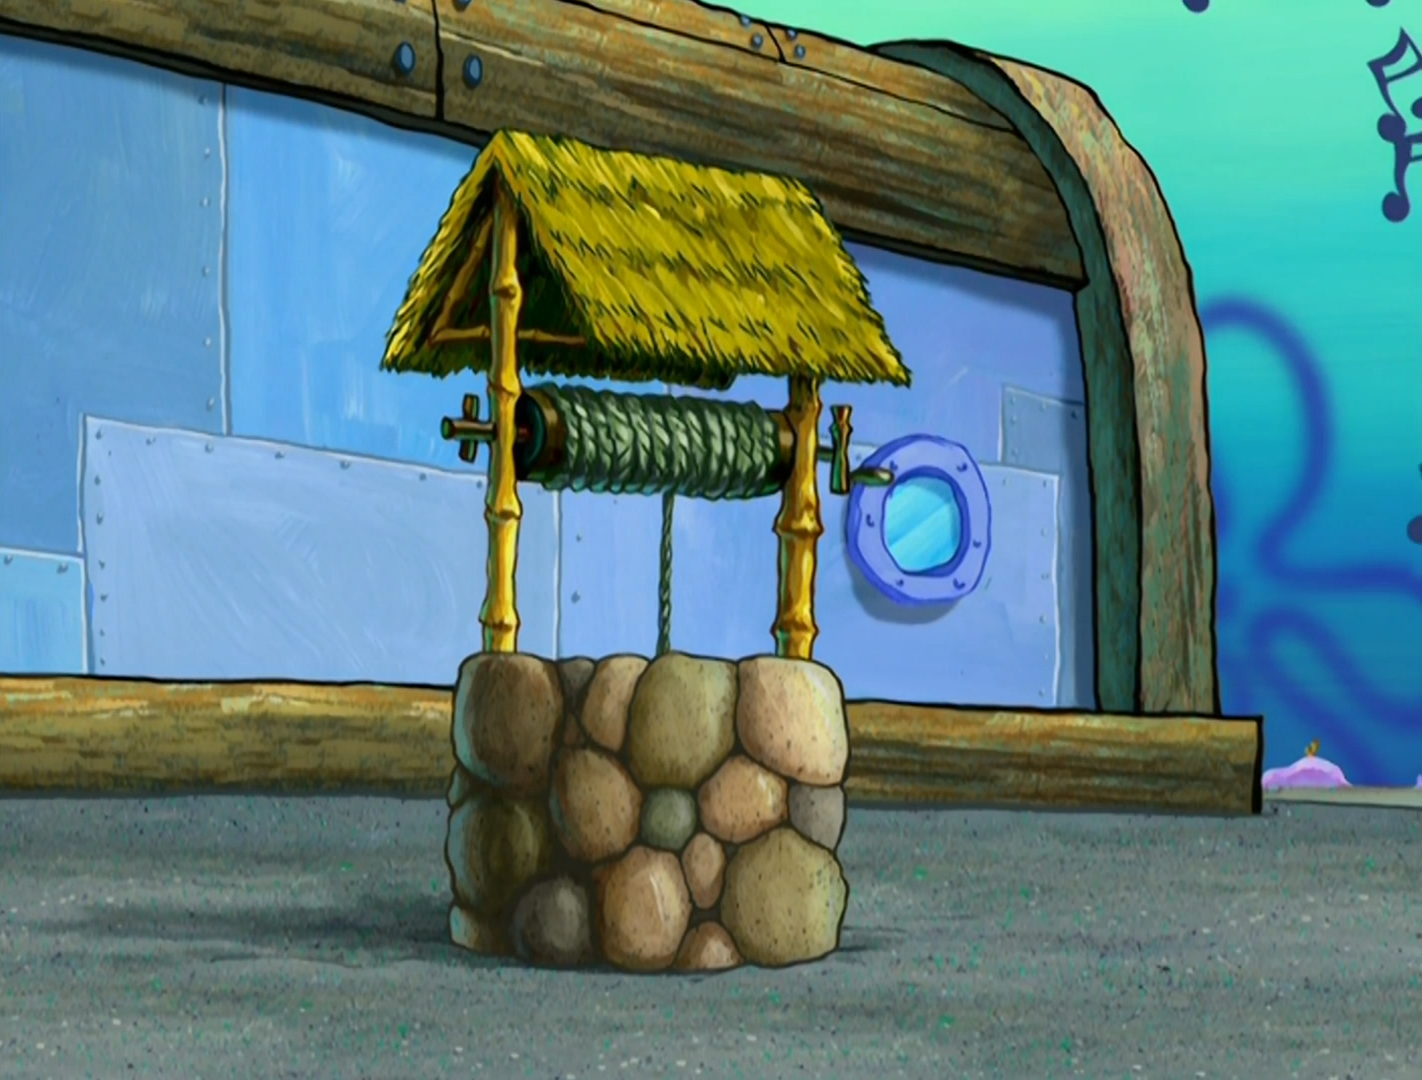 The Eugene Krabs Memorial Wishing Well